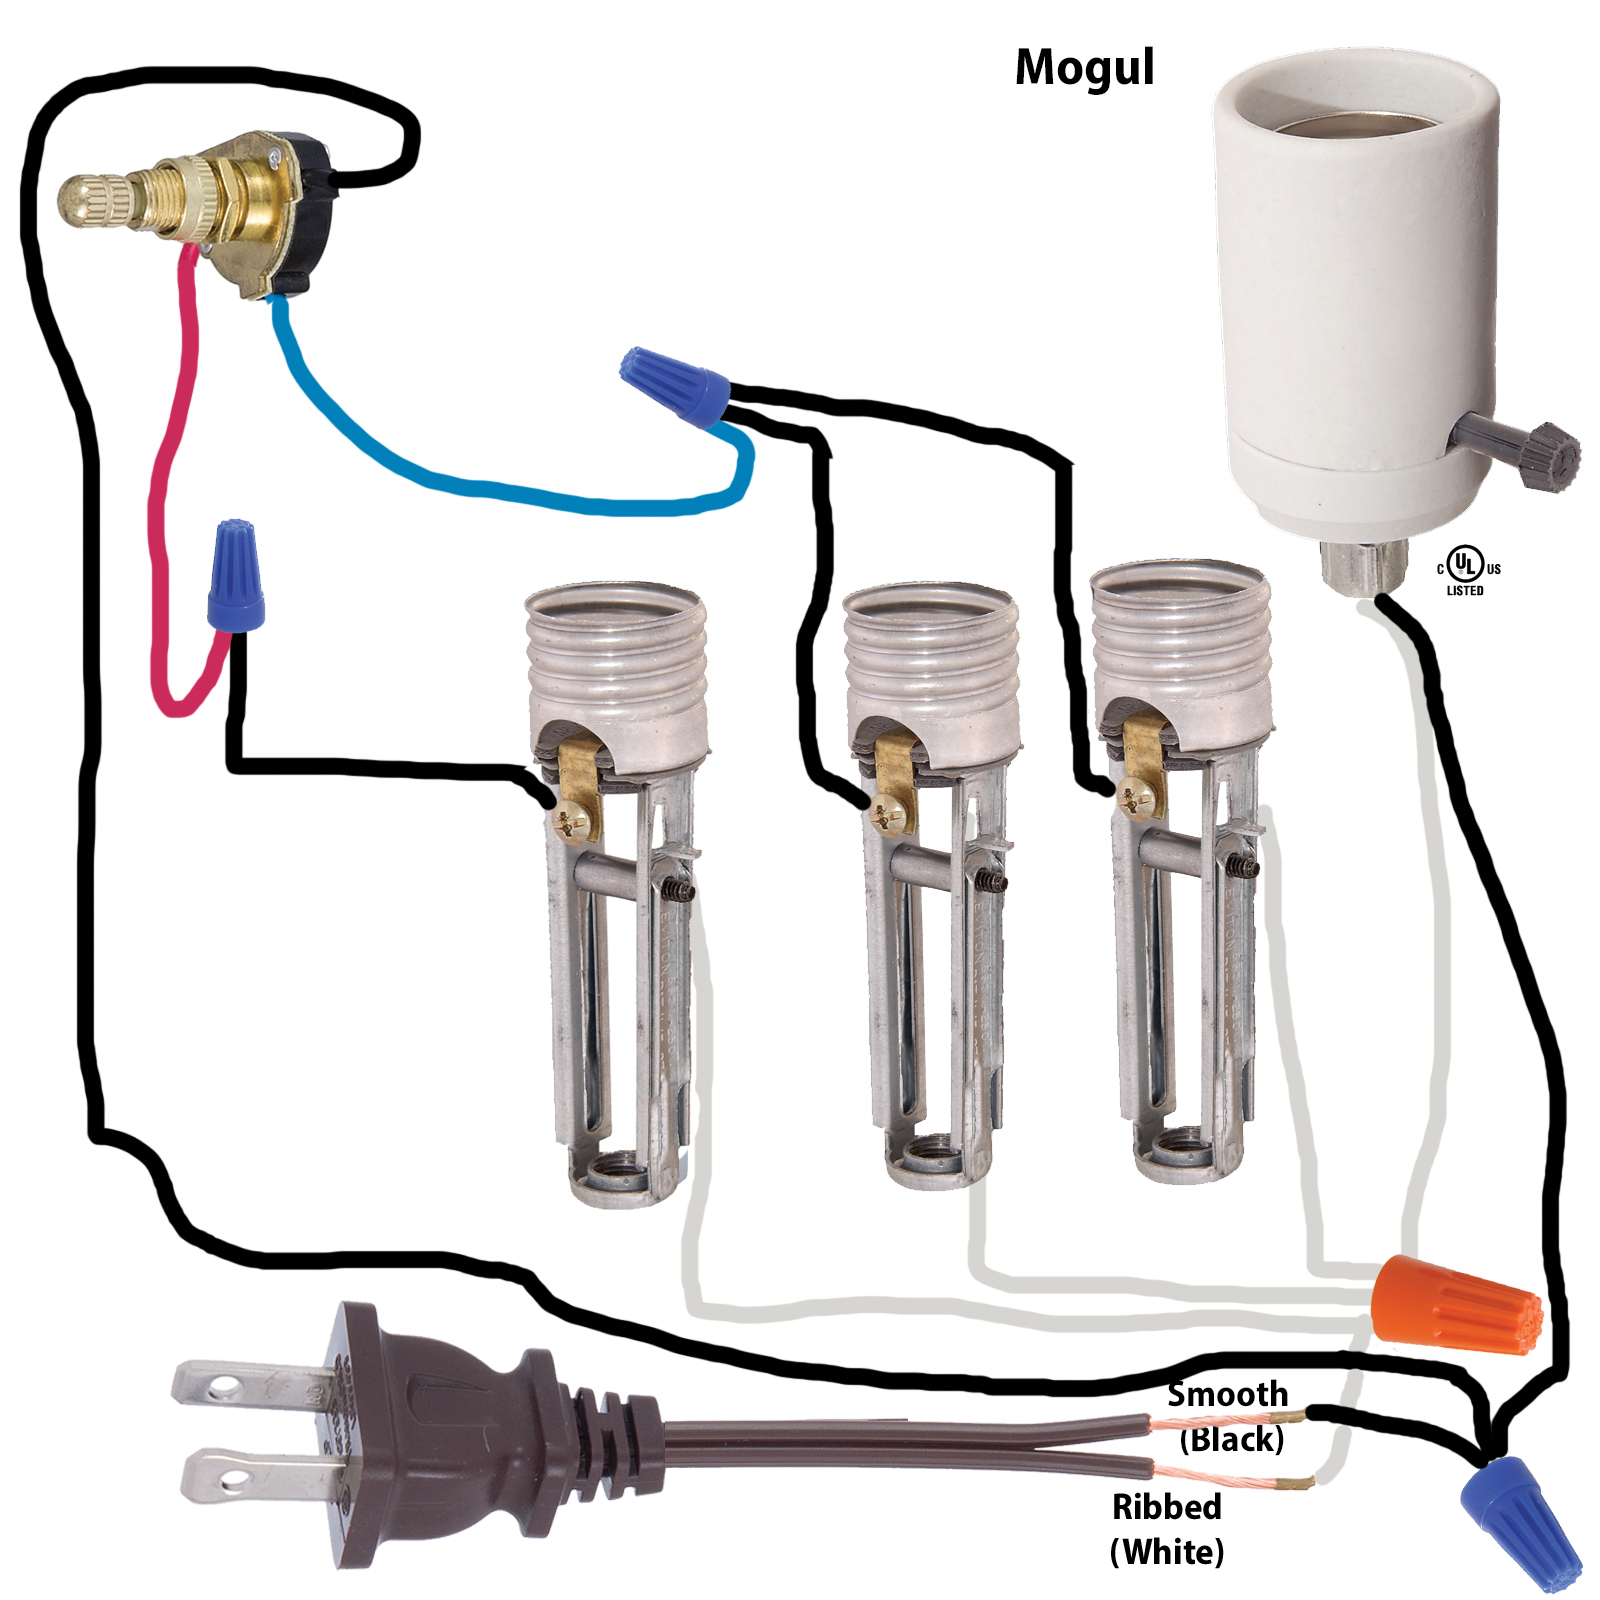 Bulb Wiring Diagram : Lamp parts and repair doctor floor with mogul